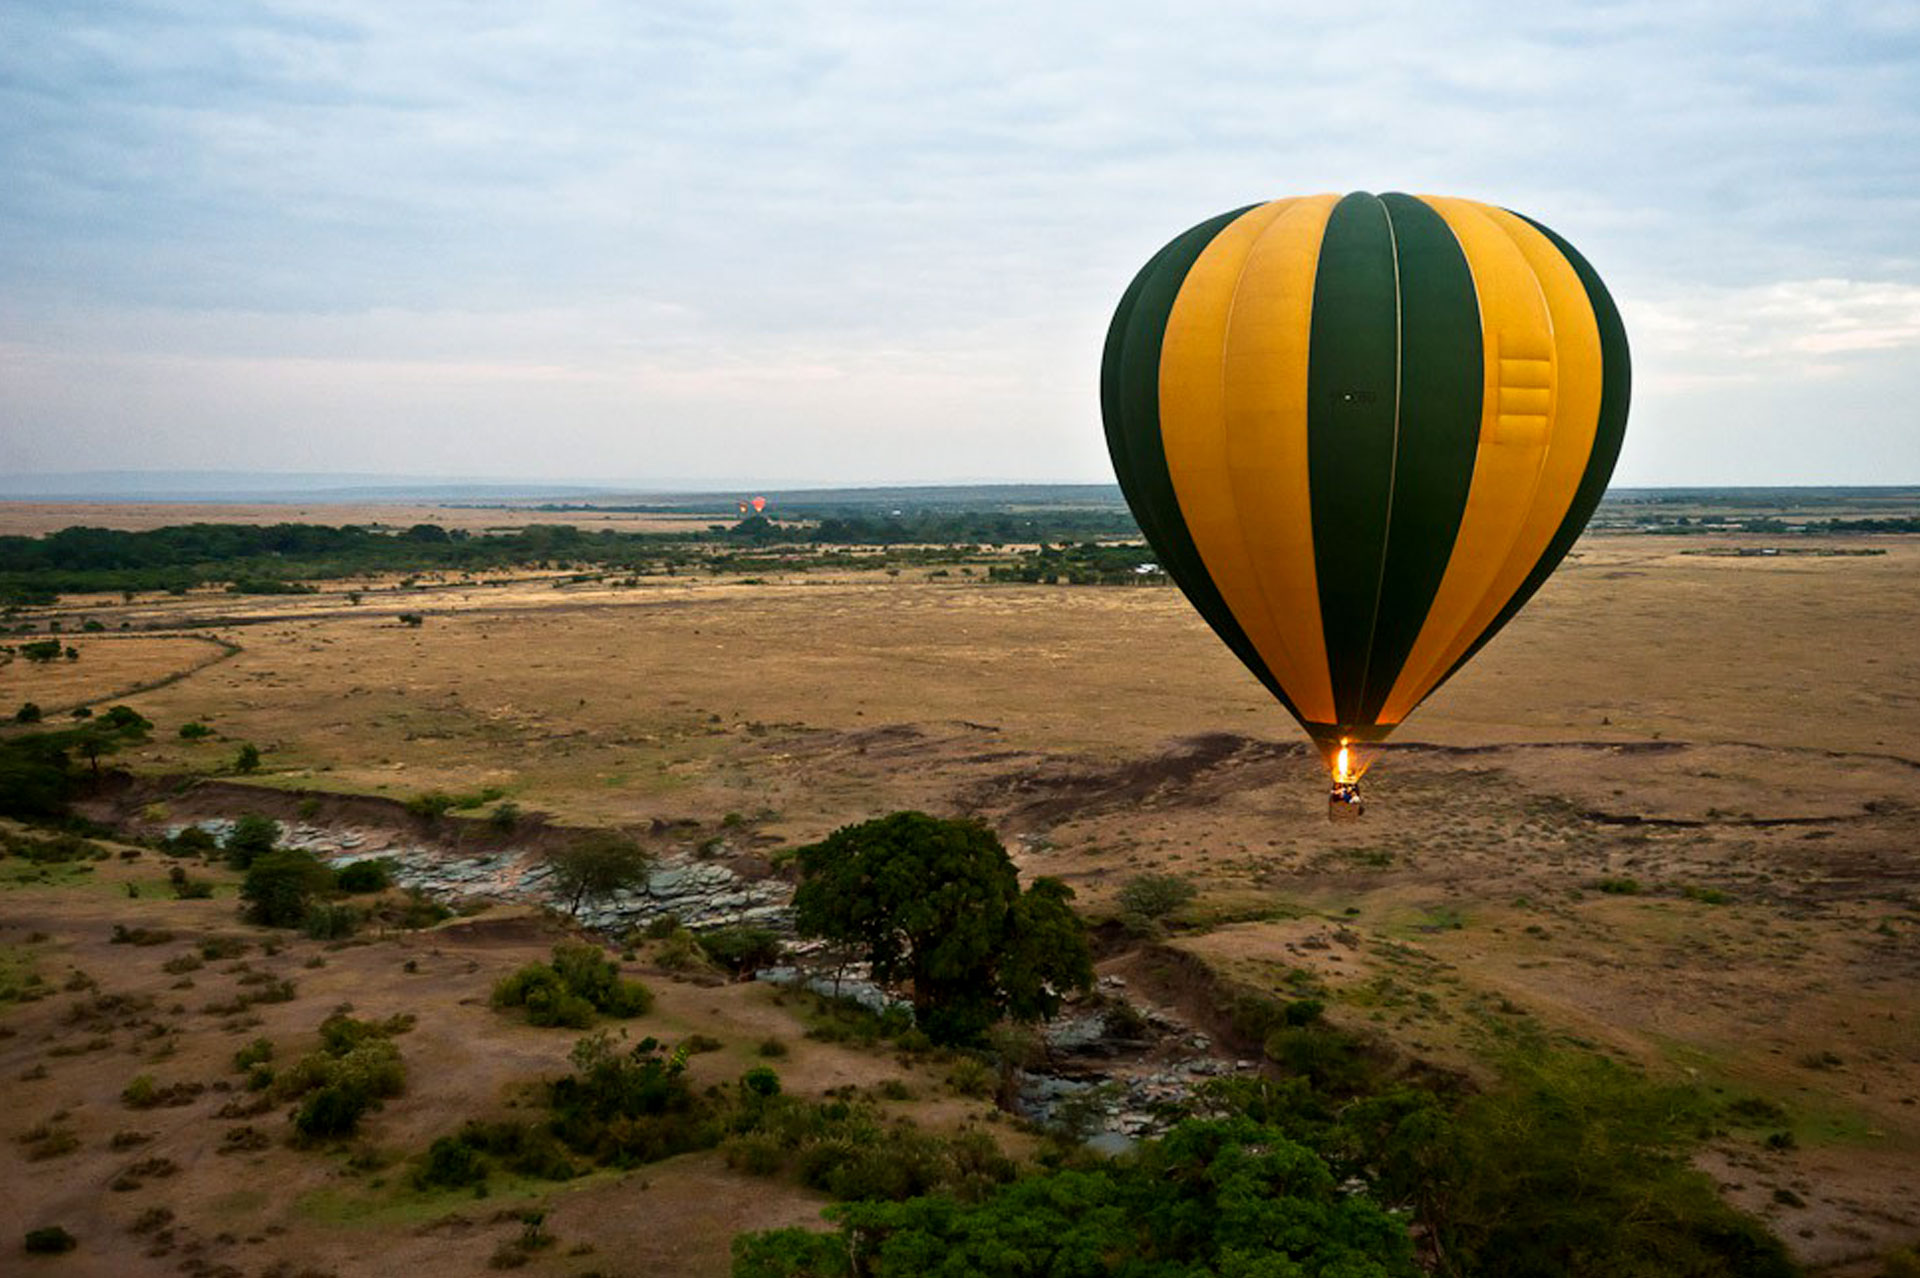 Diani_travel_center_tours_and_safaris_diani_tours_and_safaris_3_Days_masai_mara_by-air